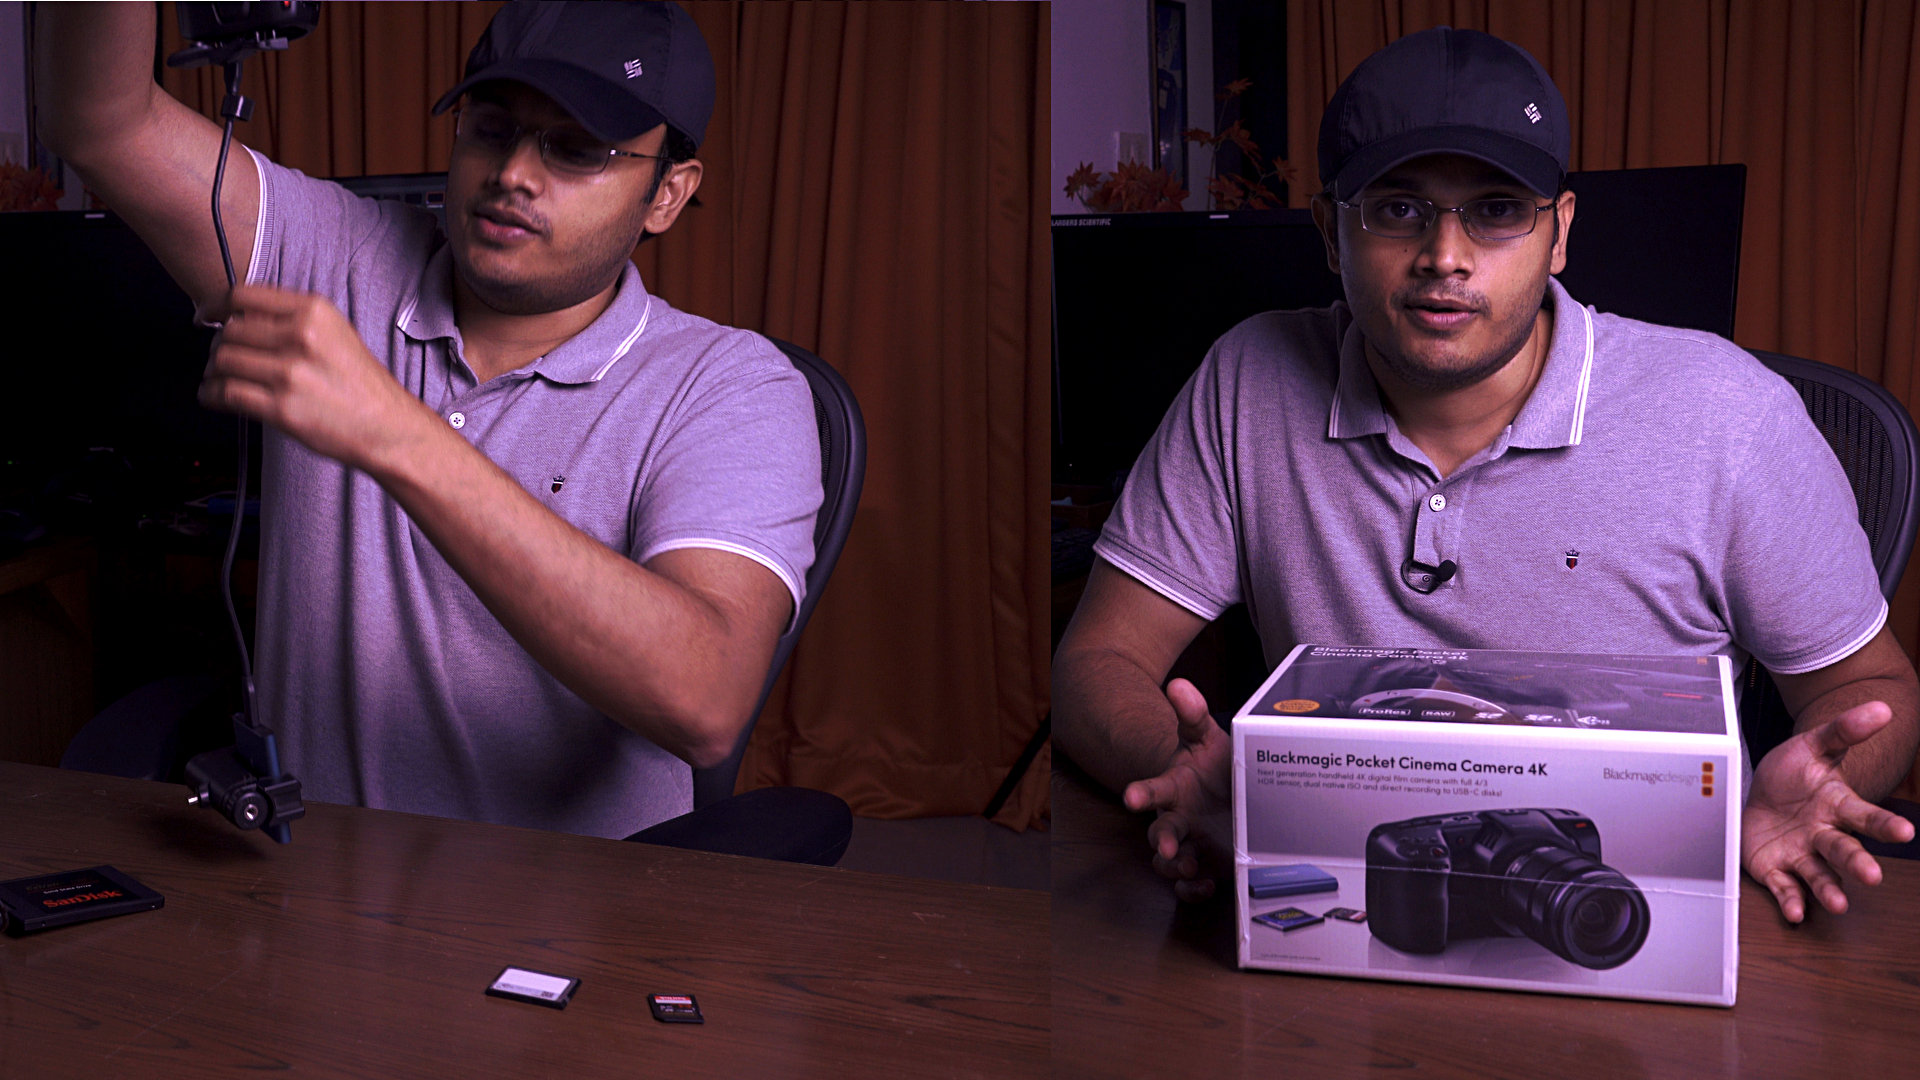 Blackmagic Pocket Camera 4K Unboxing and First Impressions